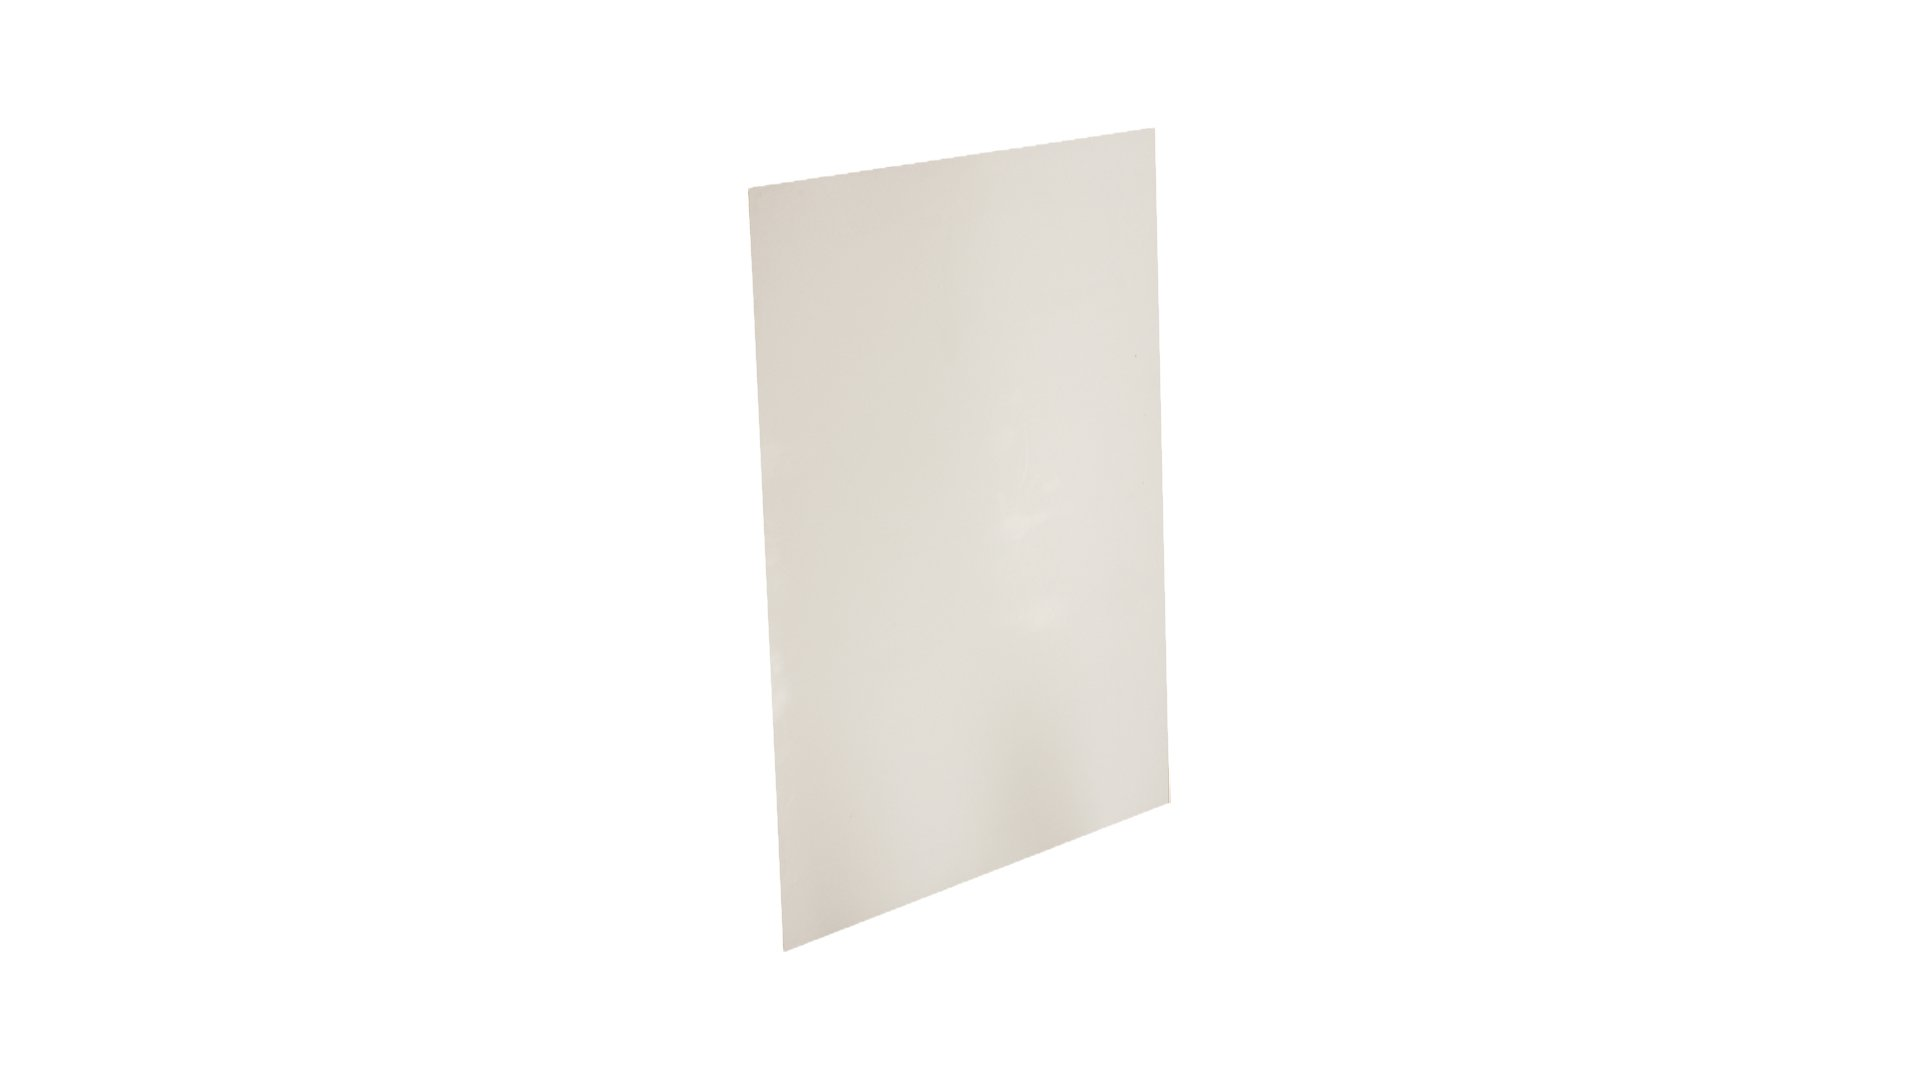 Sterling Seal & Supply Expanded PTFE Sheet, 1 mm Thick, 12'' x 6'', White (1 sheet)